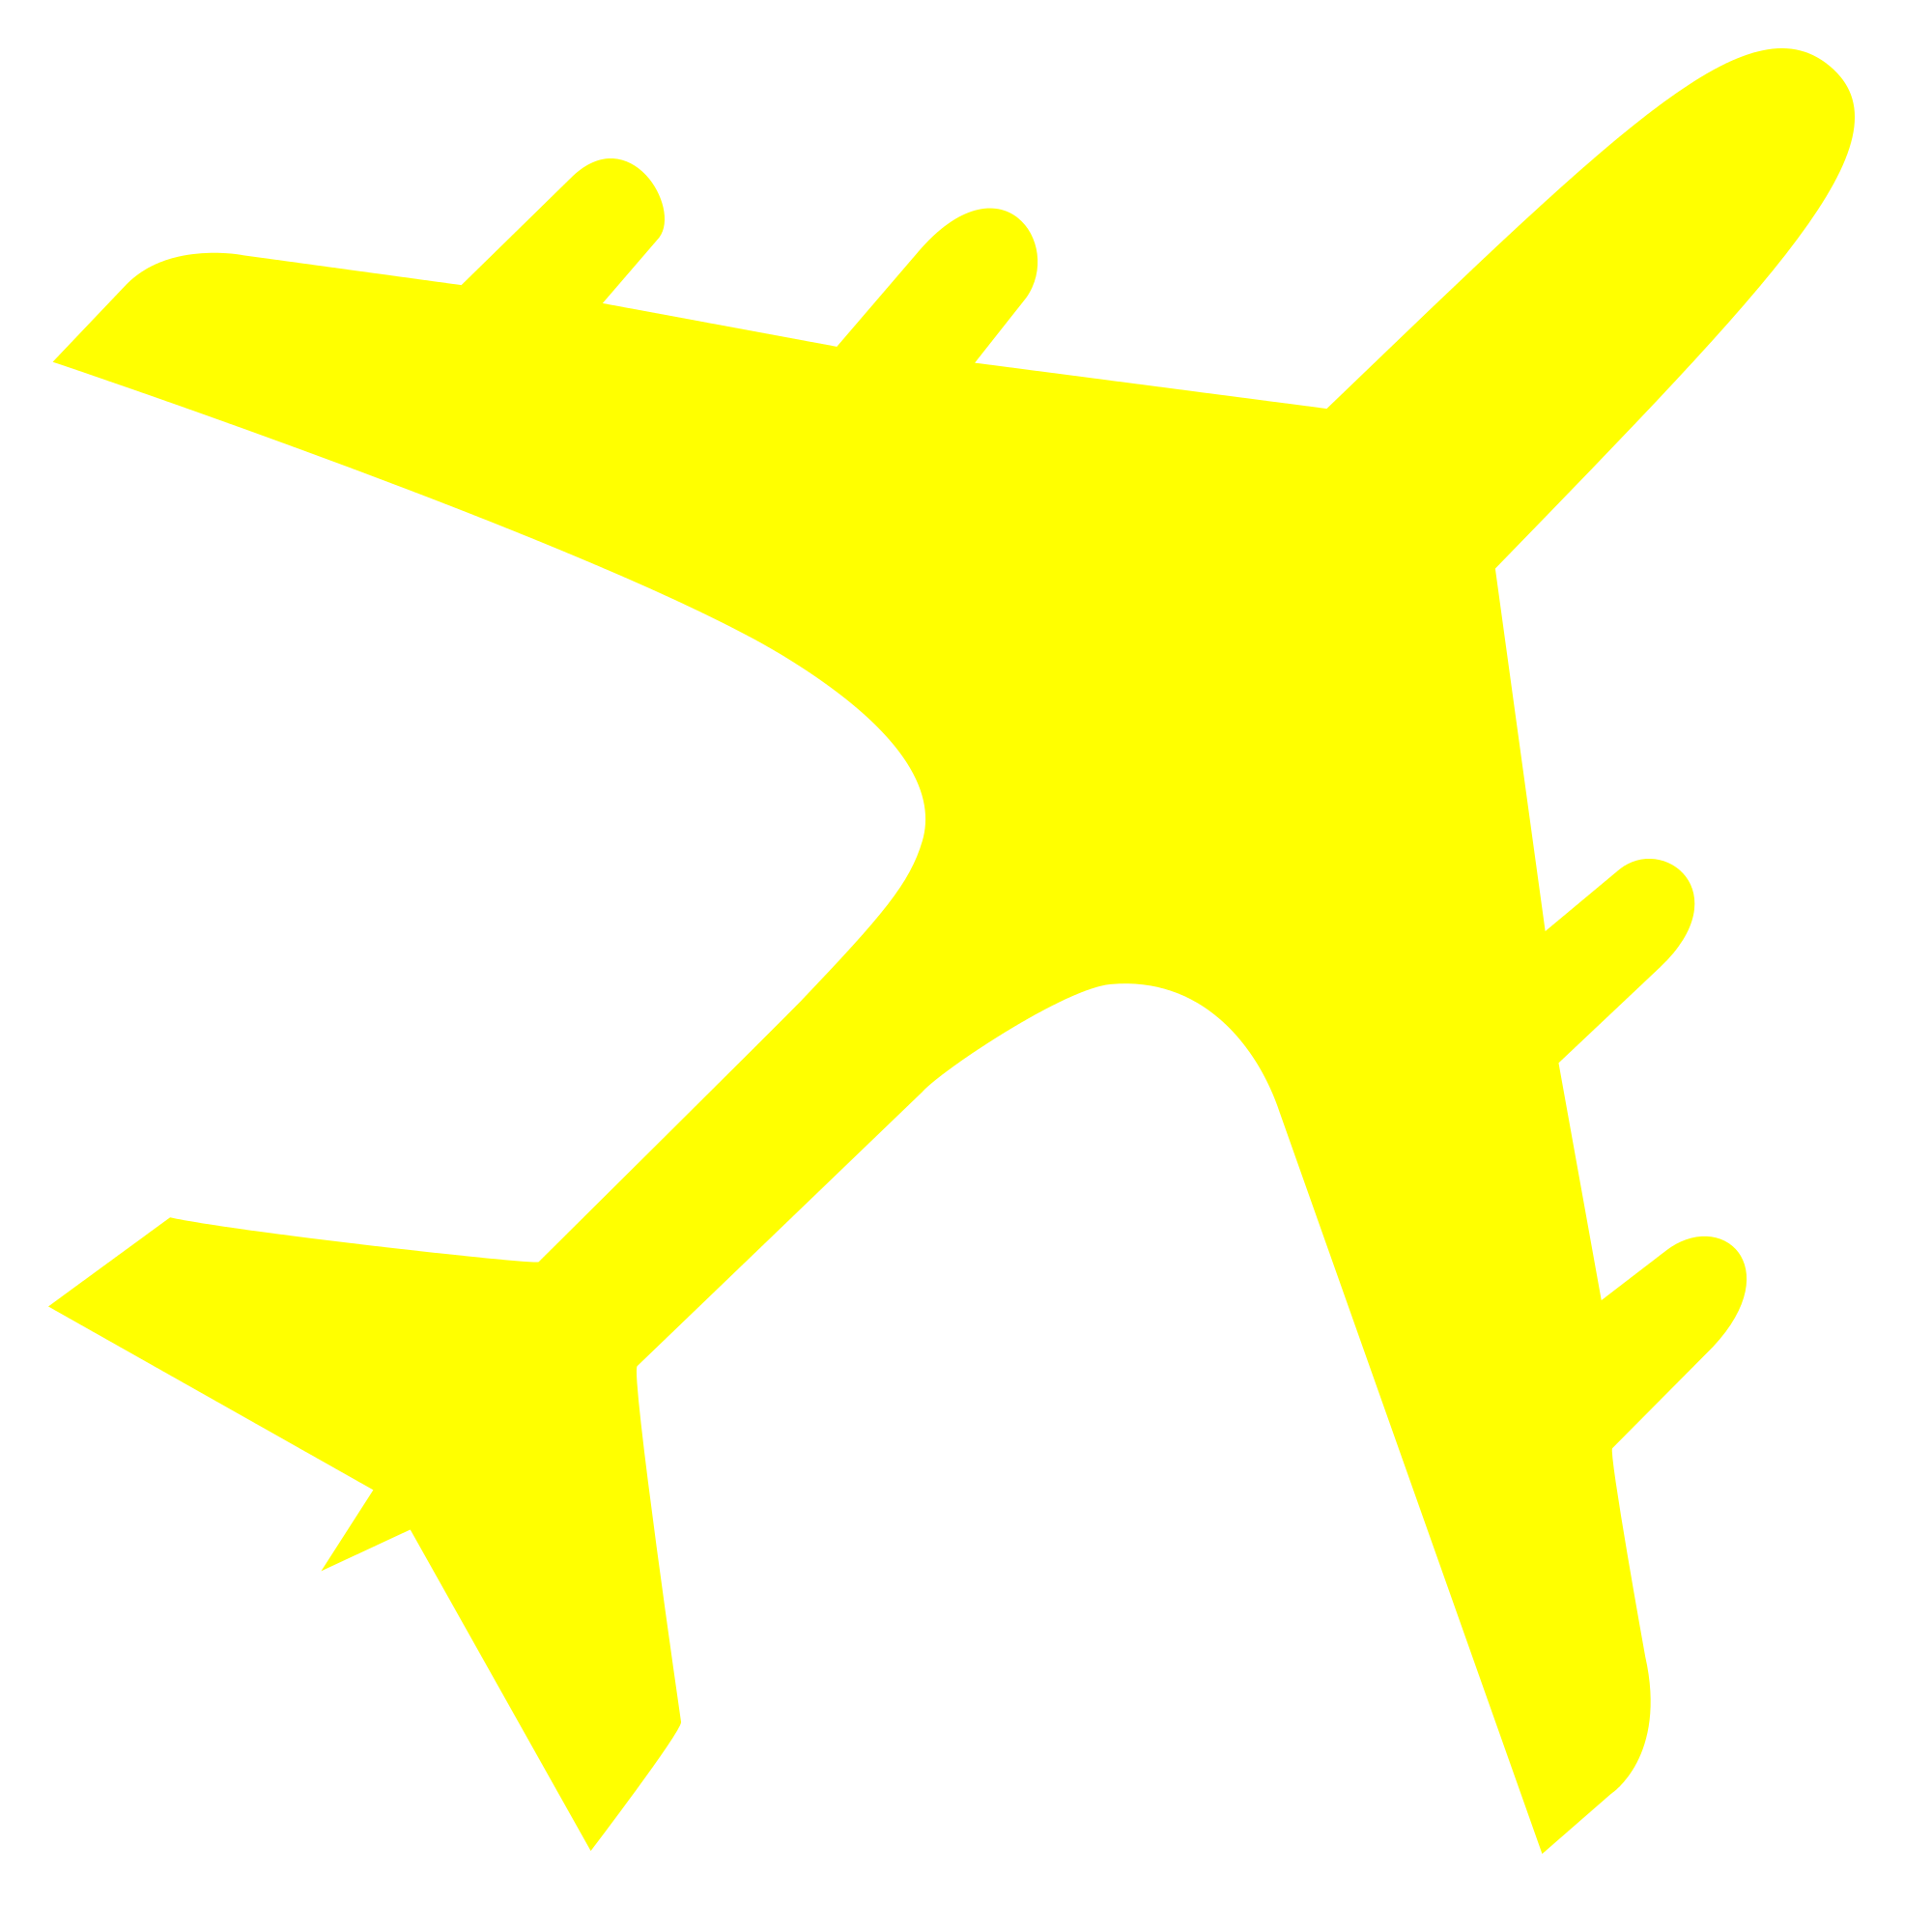 svg transparent Biplane clipart yellow. Free airplane cliparts download.